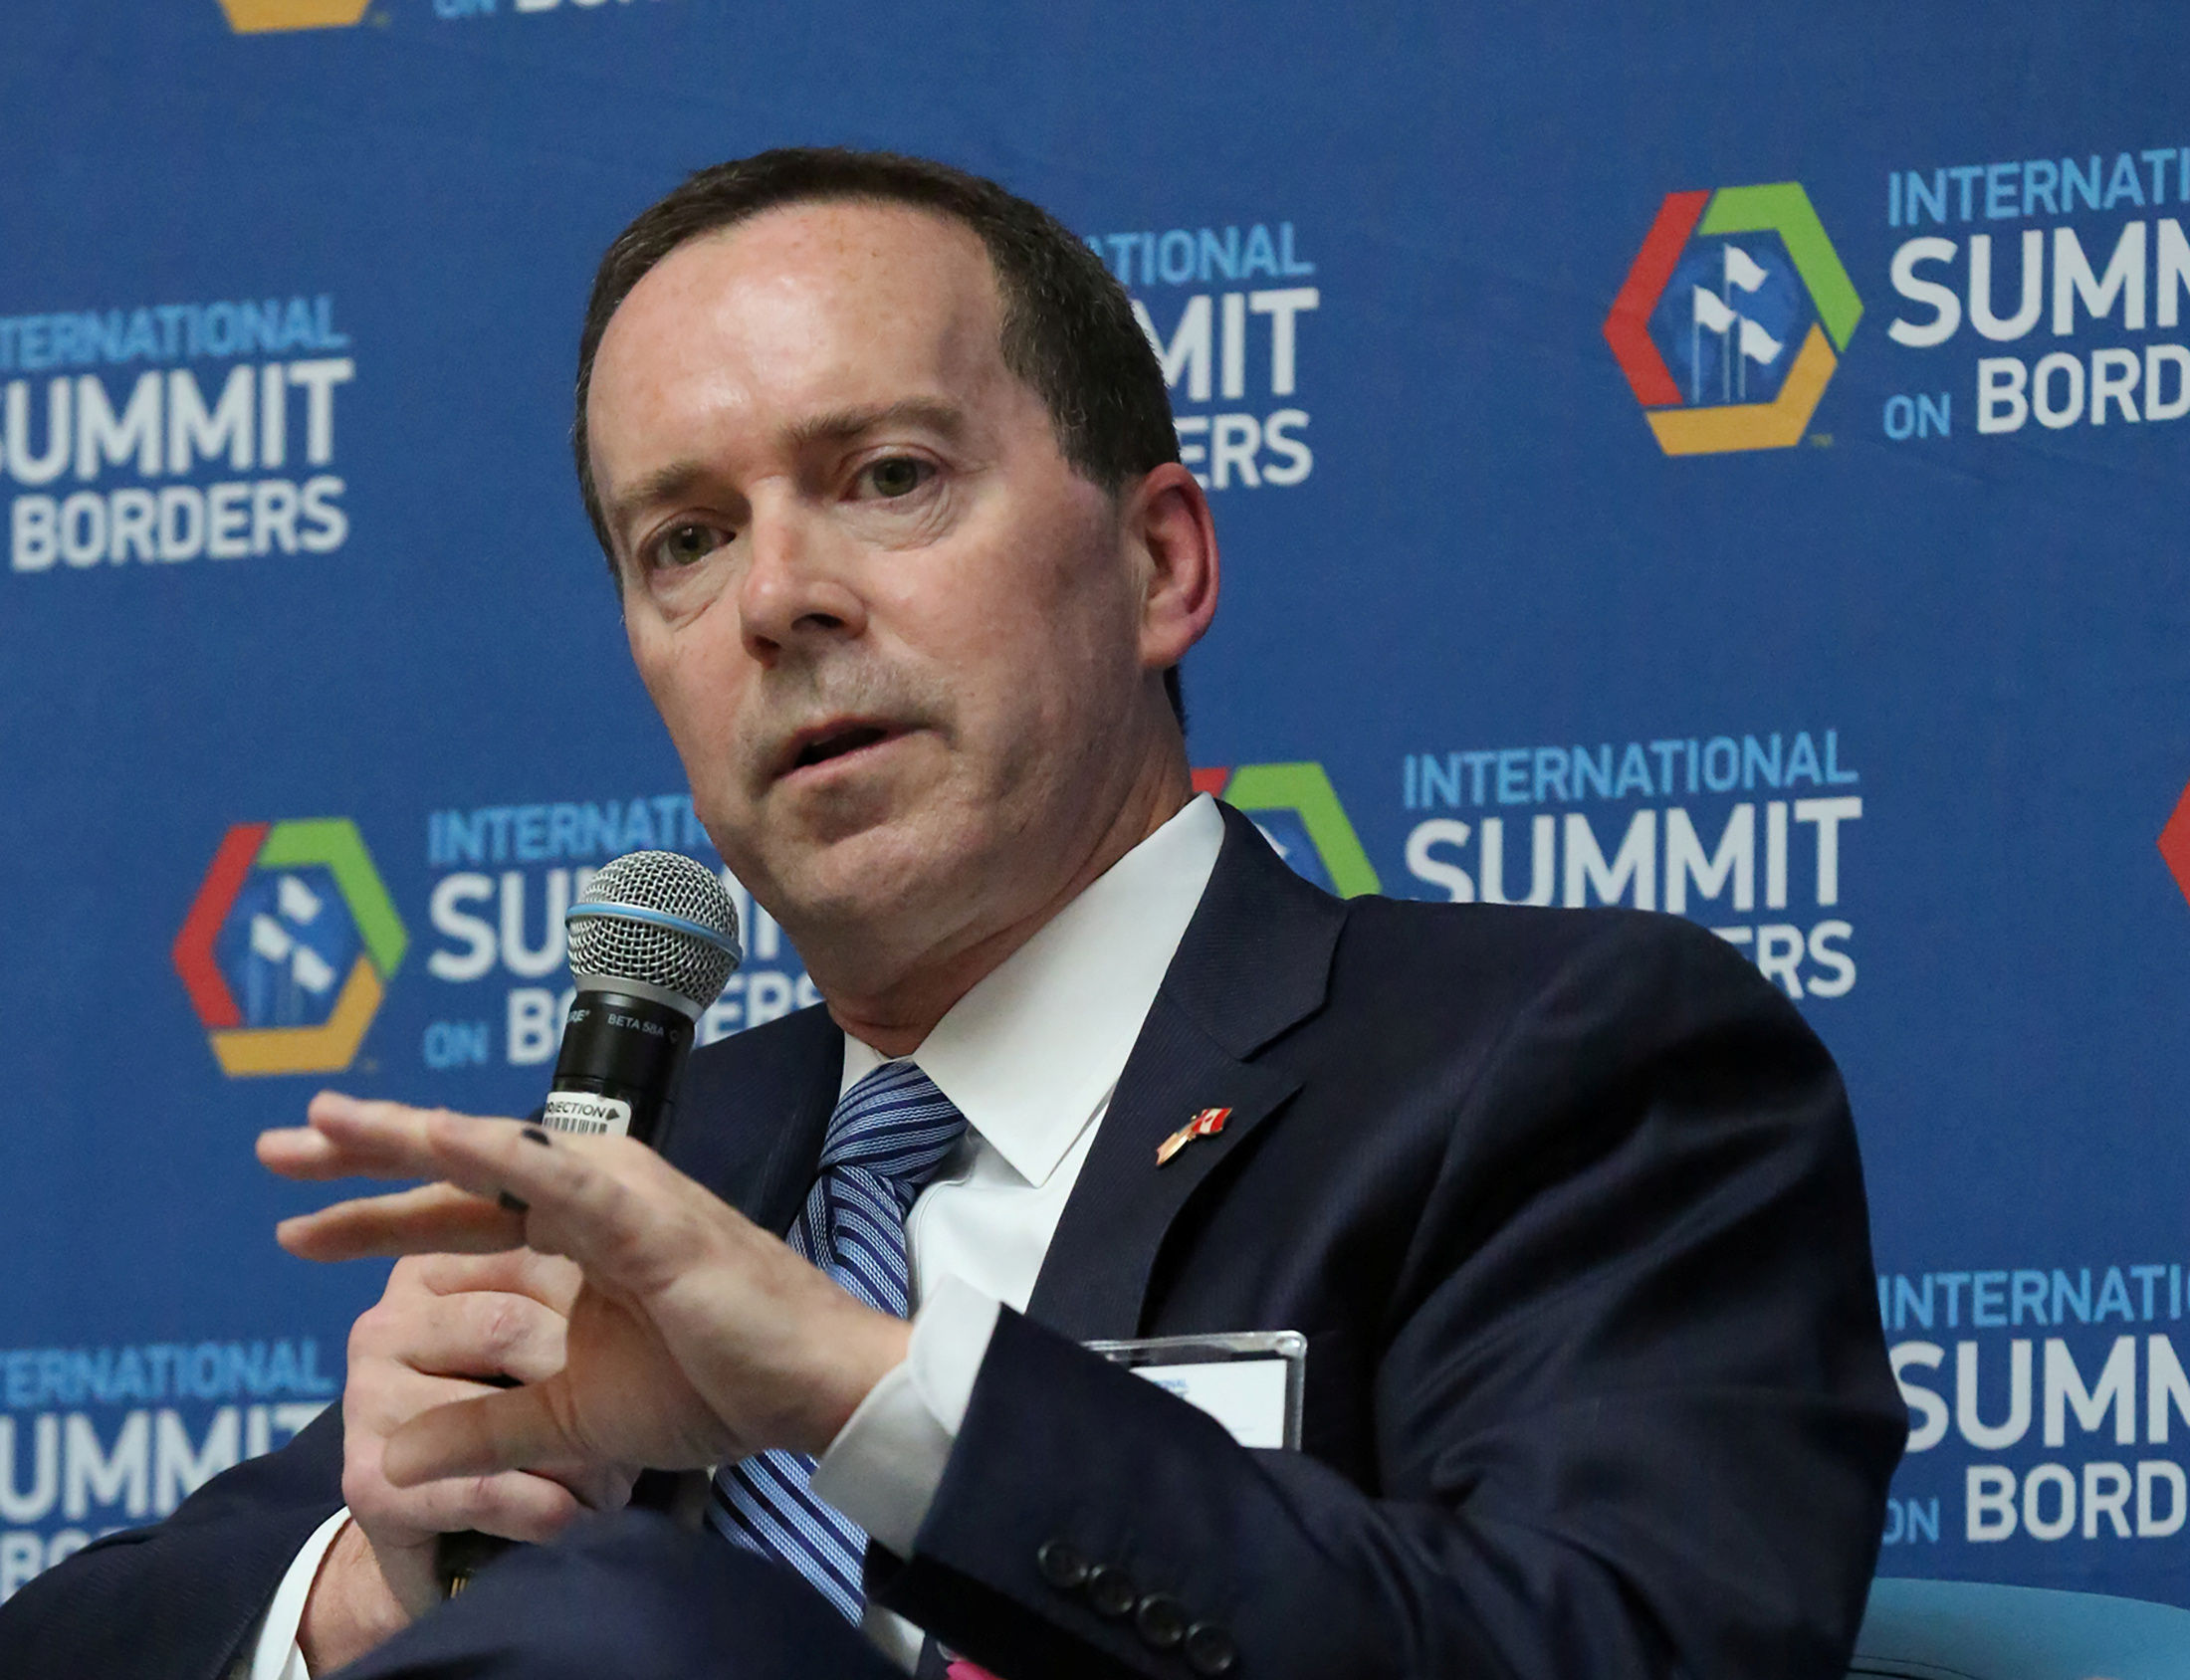 U.S. Customs and Border Protection Acting Commissioner John Sanders speaks in a panel discussion at International Summit on Borders in Washington